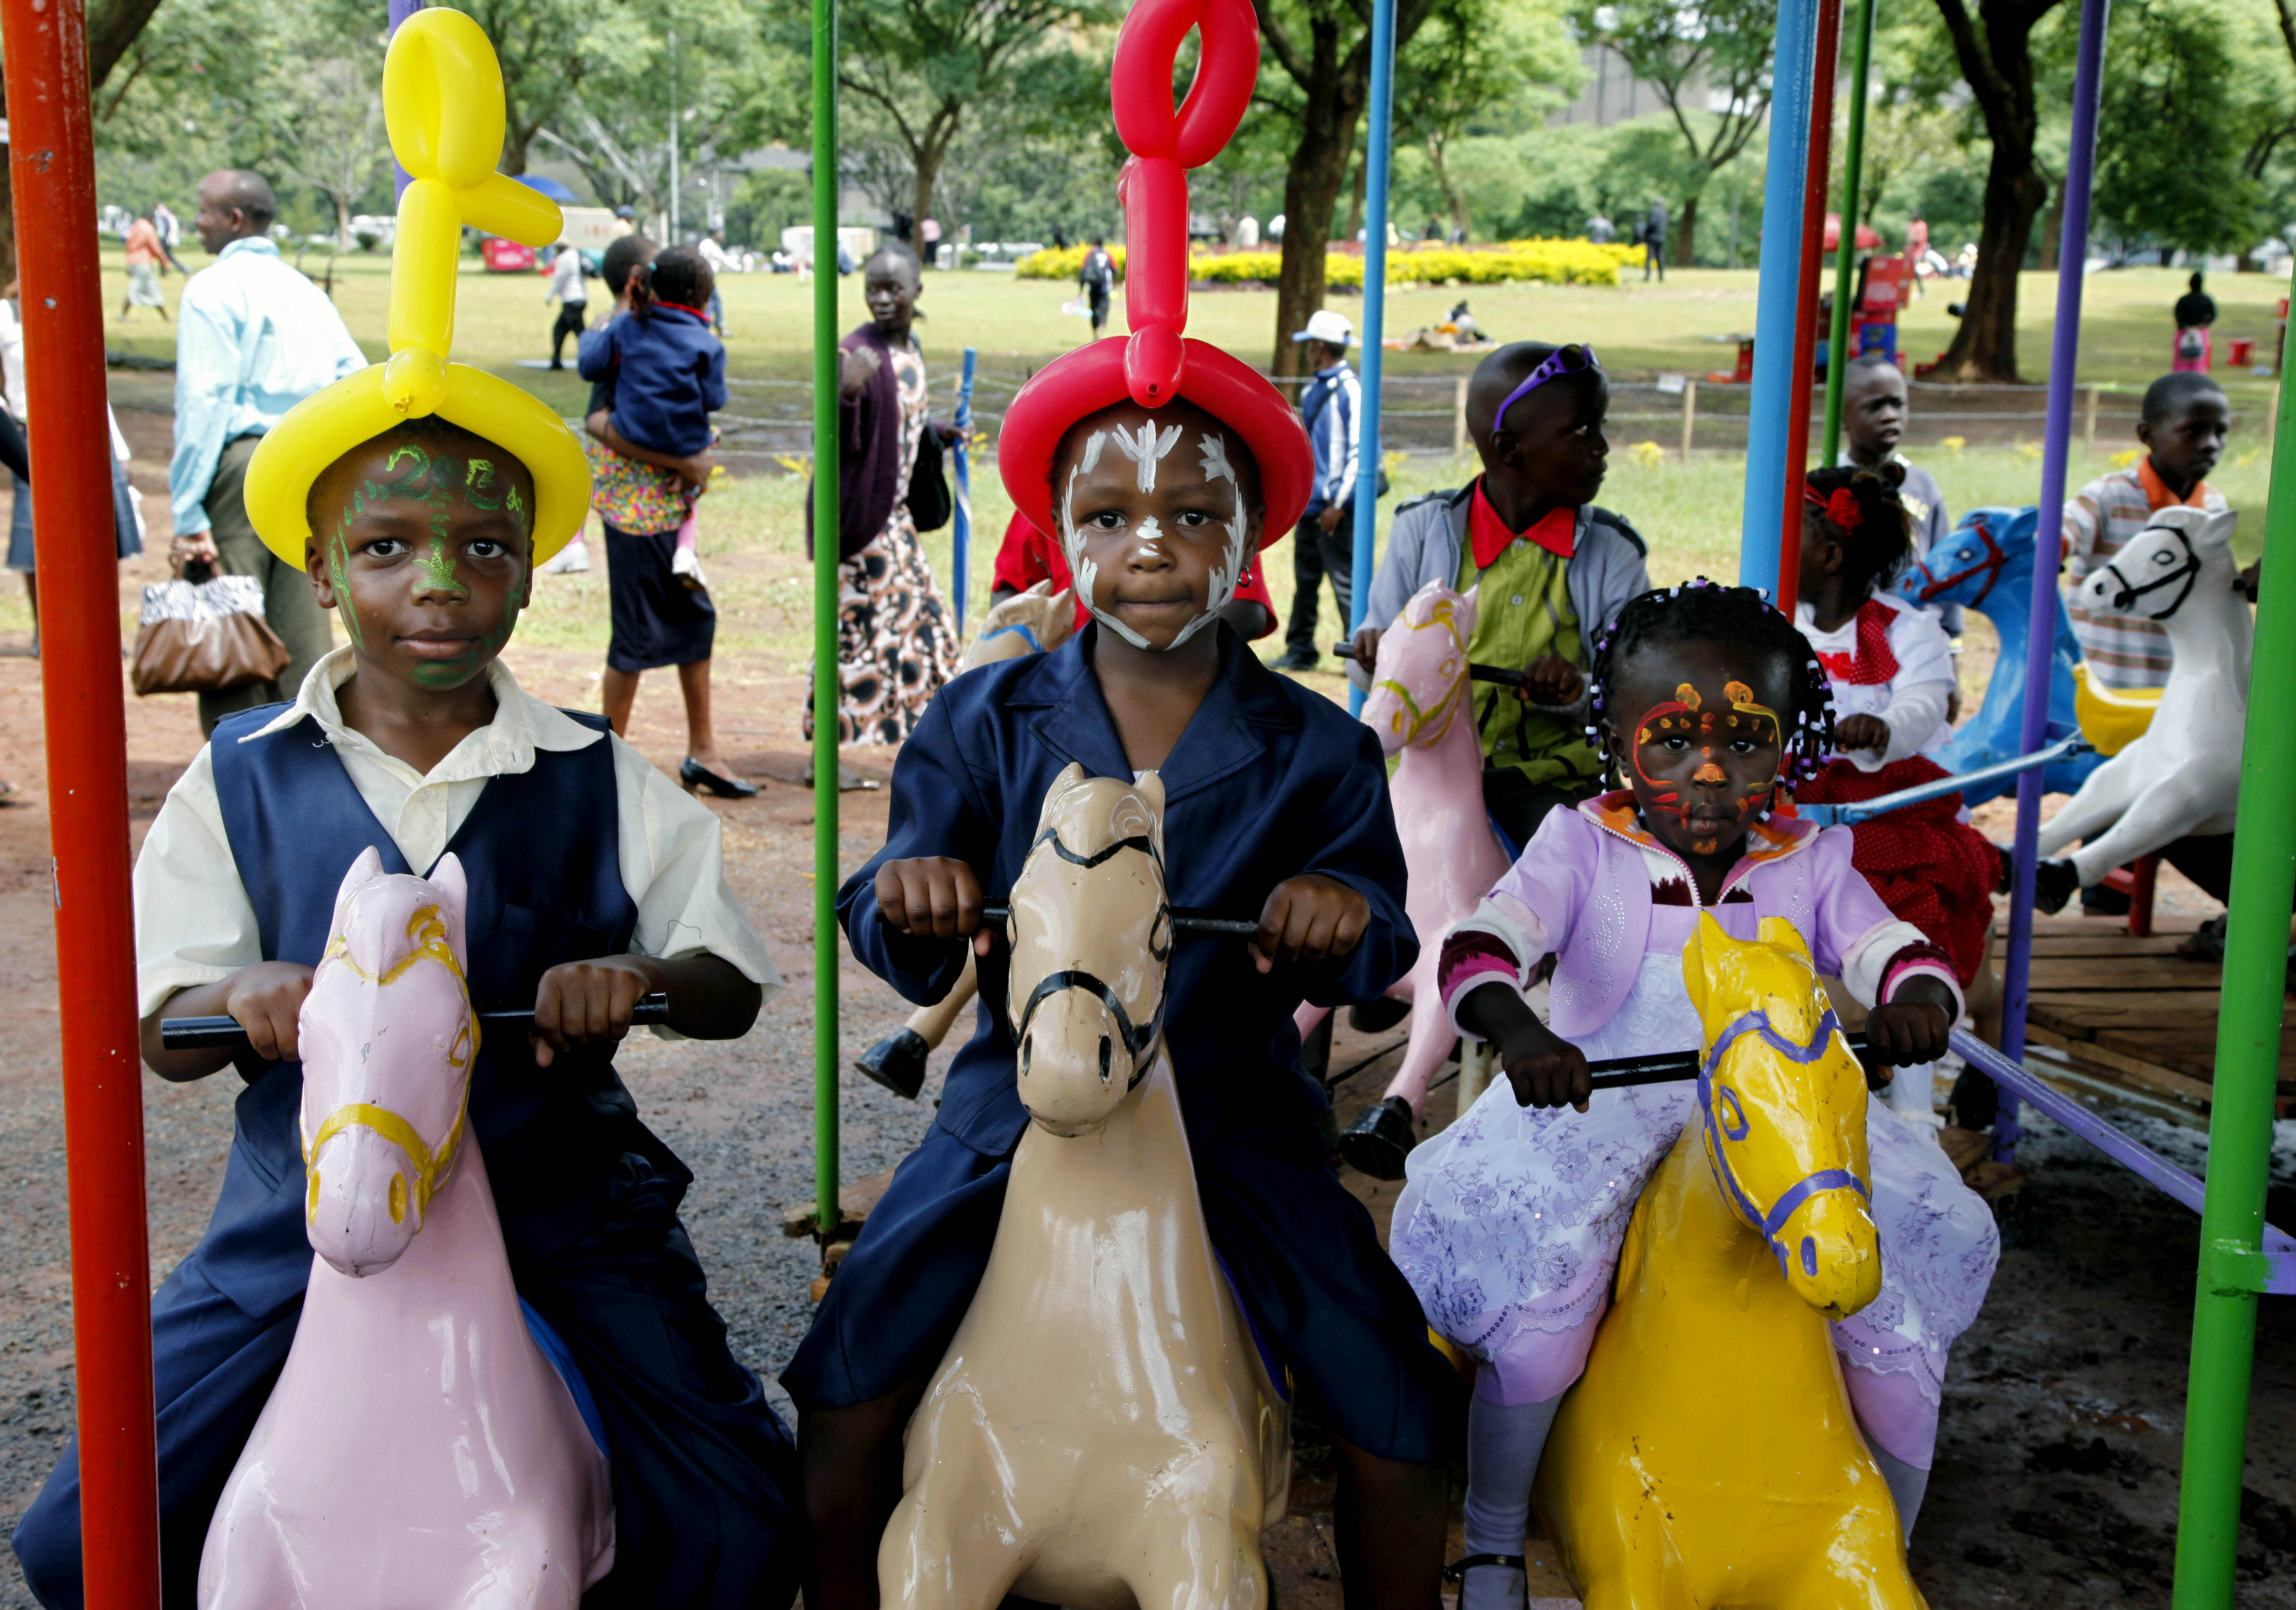 "<div class=""meta image-caption""><div class=""origin-logo origin-image none""><span>none</span></div><span class=""caption-text"">Kenyan children ride a carousel as families gather to celebrate the new year at Uhuru Park, Nairobi, Kenya. (AP)</span></div>"